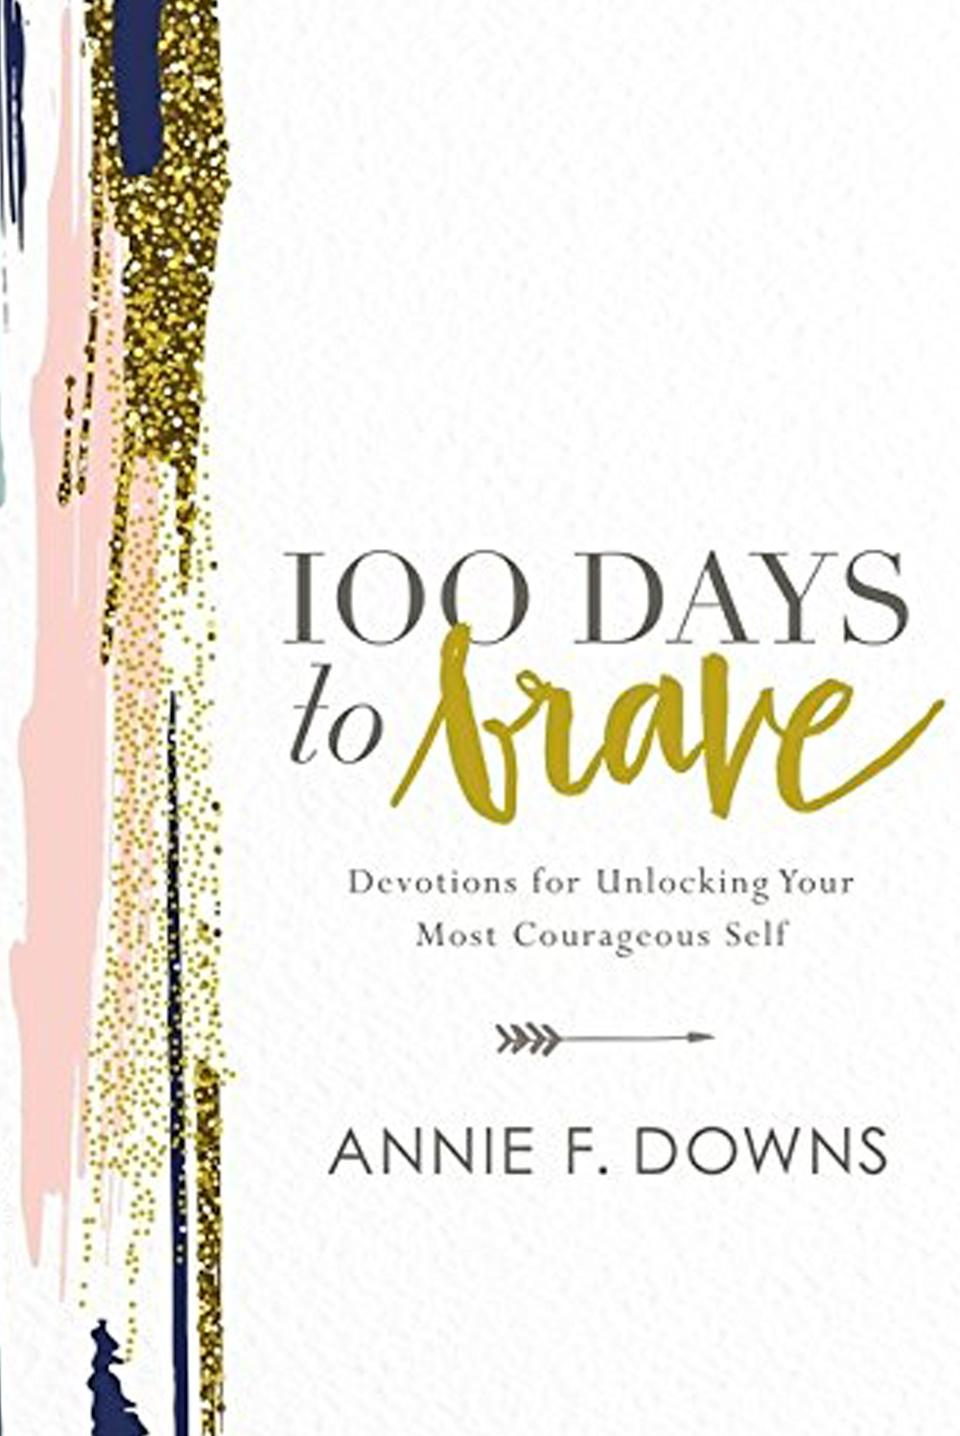 """<p><strong>Zondervan</strong></p><p>amazon.com</p><p><strong>$10.98</strong></p><p><a href=""""http://www.amazon.com/dp/031008962X/?tag=syn-yahoo-20&ascsubtag=%5Bartid%7C10070.g.26315985%5Bsrc%7Cyahoo-us"""" rel=""""nofollow noopener"""" target=""""_blank"""" data-ylk=""""slk:SHOP NOW"""" class=""""link rapid-noclick-resp"""">SHOP NOW</a></p><p>If you're looking for some wild courage in your life, you just might find it in the pages of this devotional. </p><p><strong>Related: </strong><a href=""""https://www.womansday.com/life/entertainment/g25360180/best-christian-movies/"""" rel=""""nofollow noopener"""" target=""""_blank"""" data-ylk=""""slk:The 20 Best Christian Movies to Watch Right Now"""" class=""""link rapid-noclick-resp"""">The 20 Best Christian Movies to Watch Right Now</a></p>"""